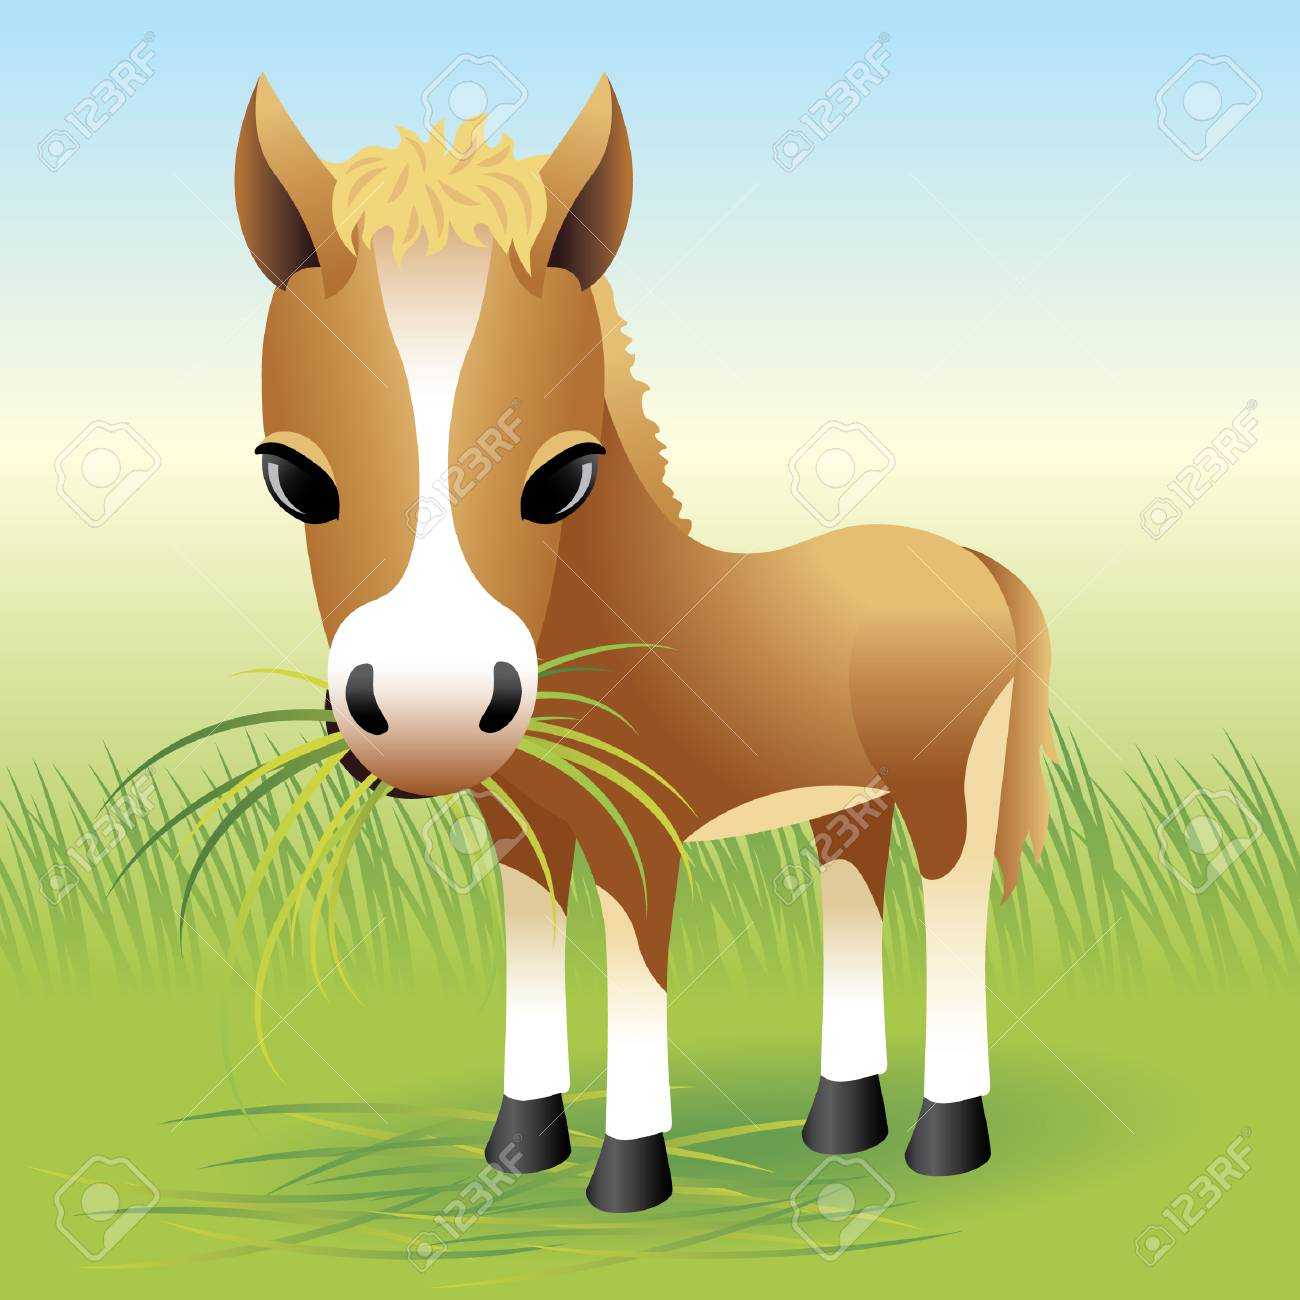 Baby Animal collection: Horse - 4264043